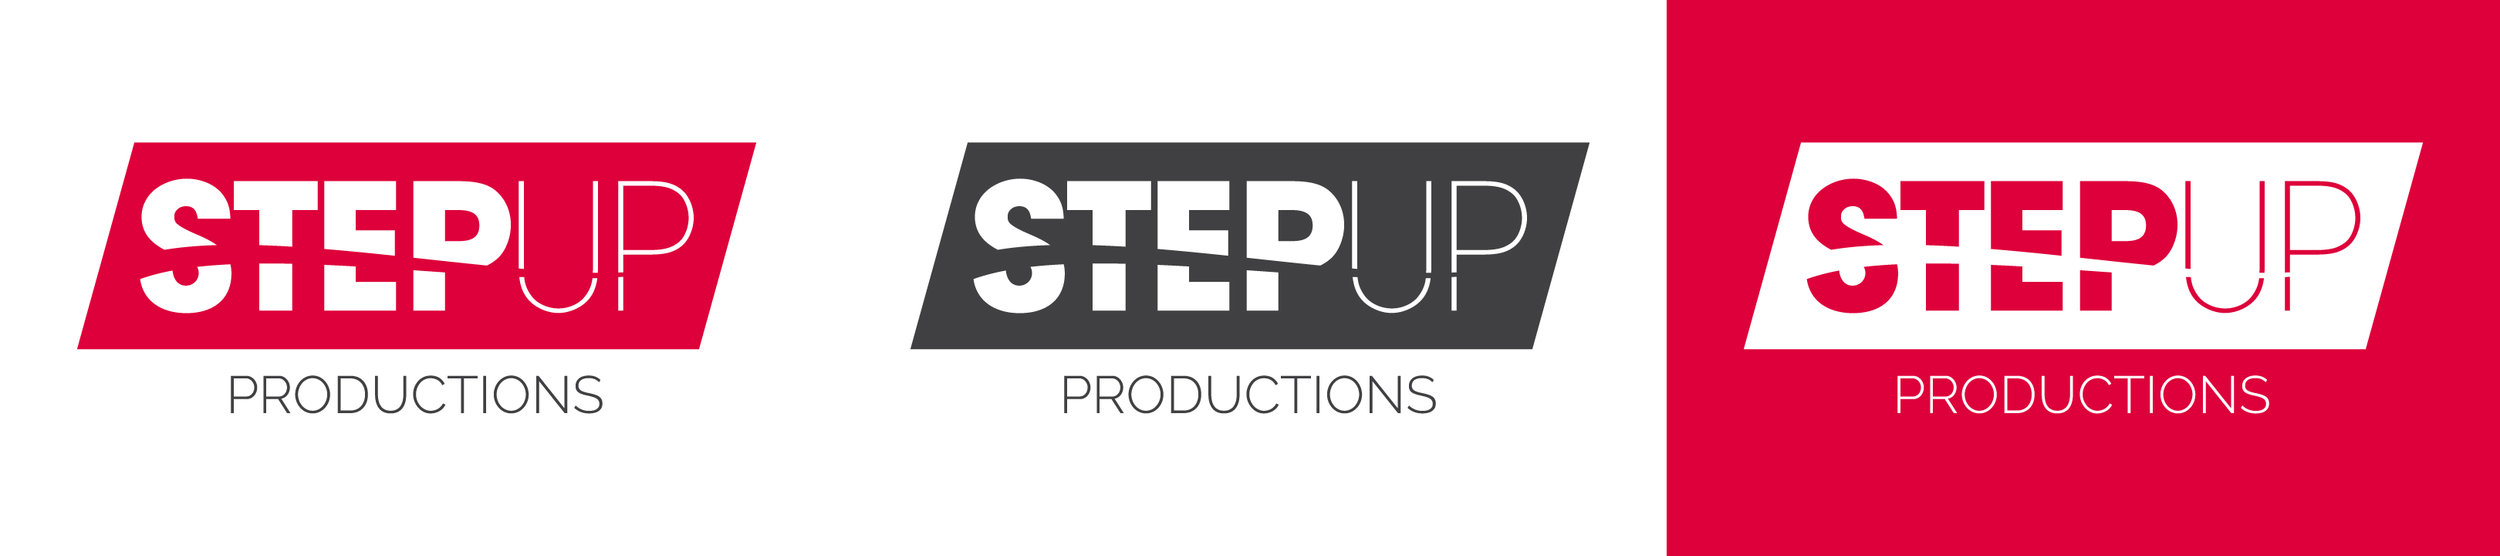 step up productions logo